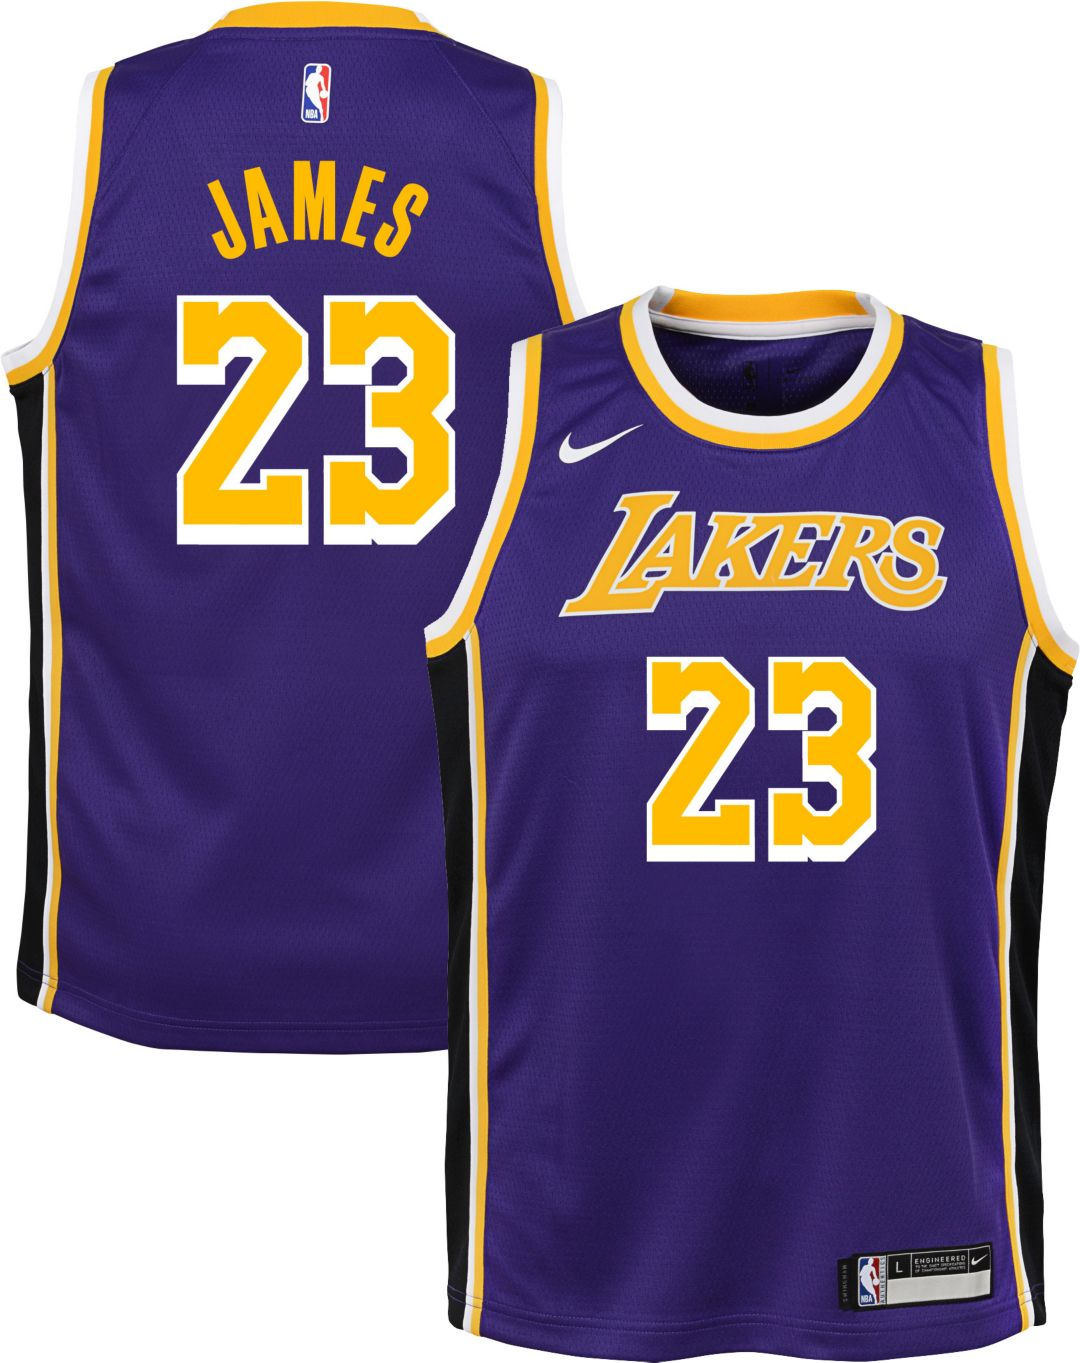 a9f2a785 Nike Youth Los Angeles Lakers LeBron James Dri-FIT Purple Swingman Jersey.  noImageFound. Previous